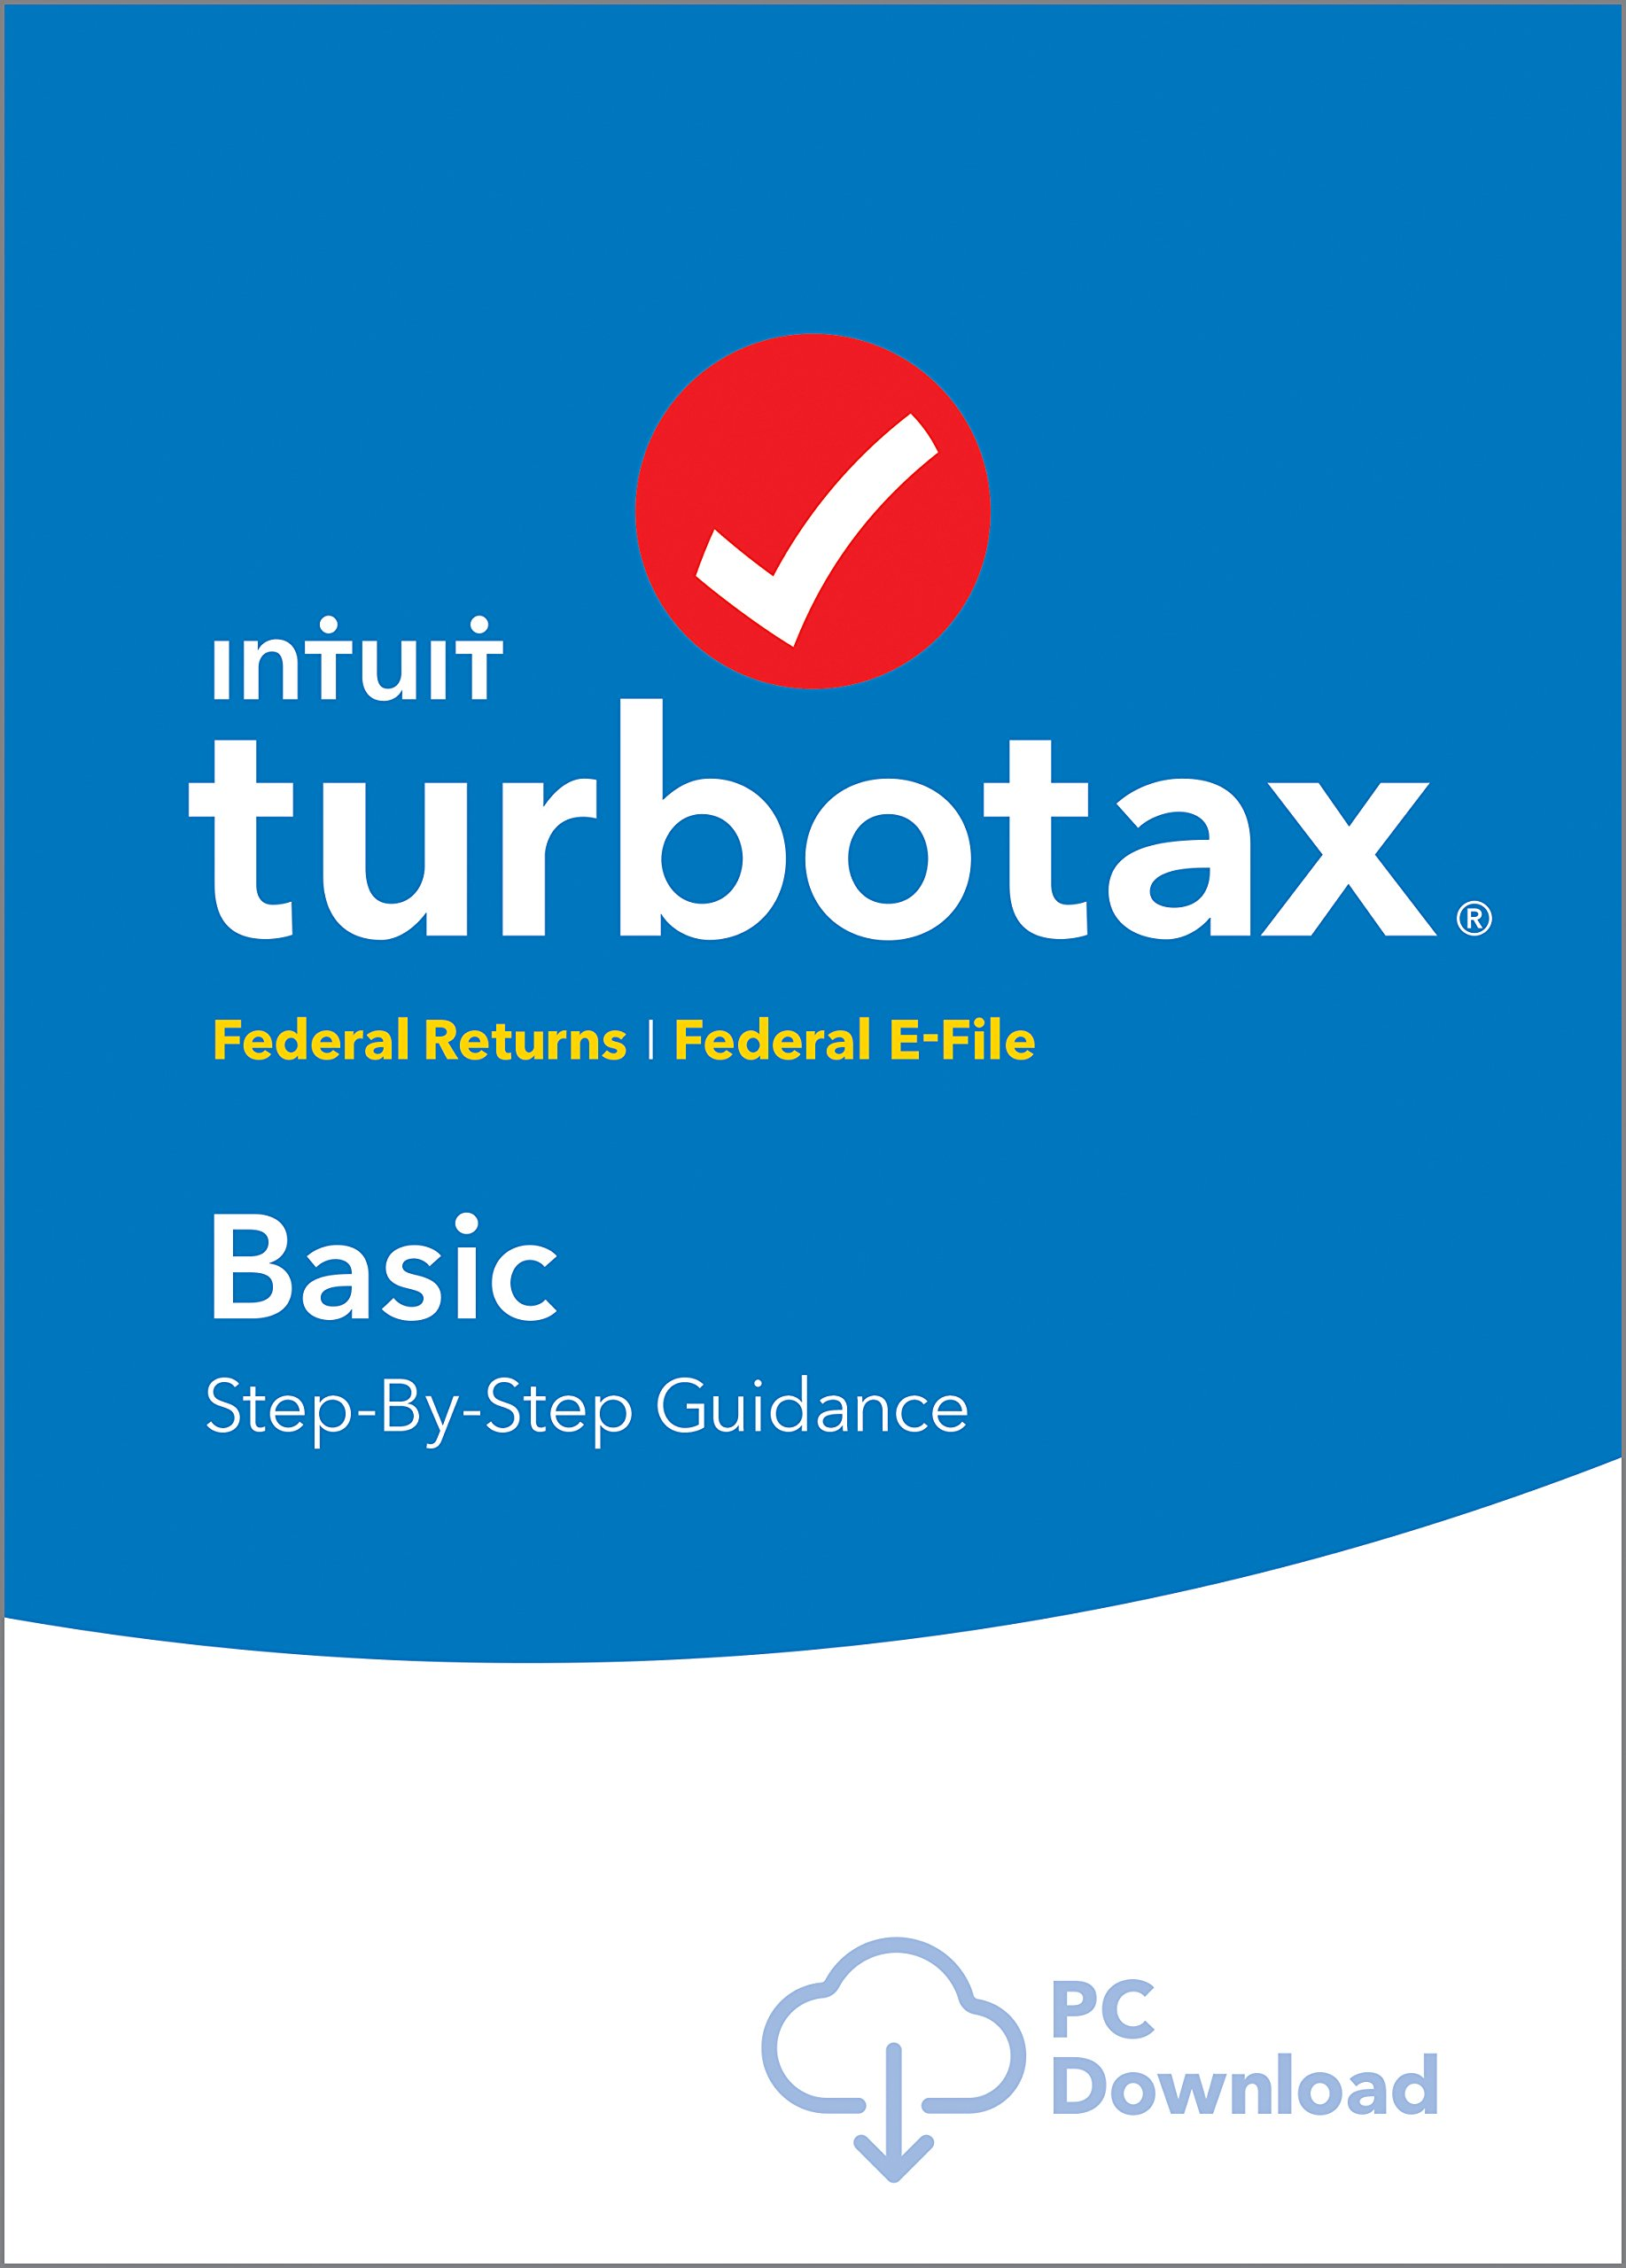 TurboTax Basic 2018 Tax Software [PC Download] by Intuit, Inc.